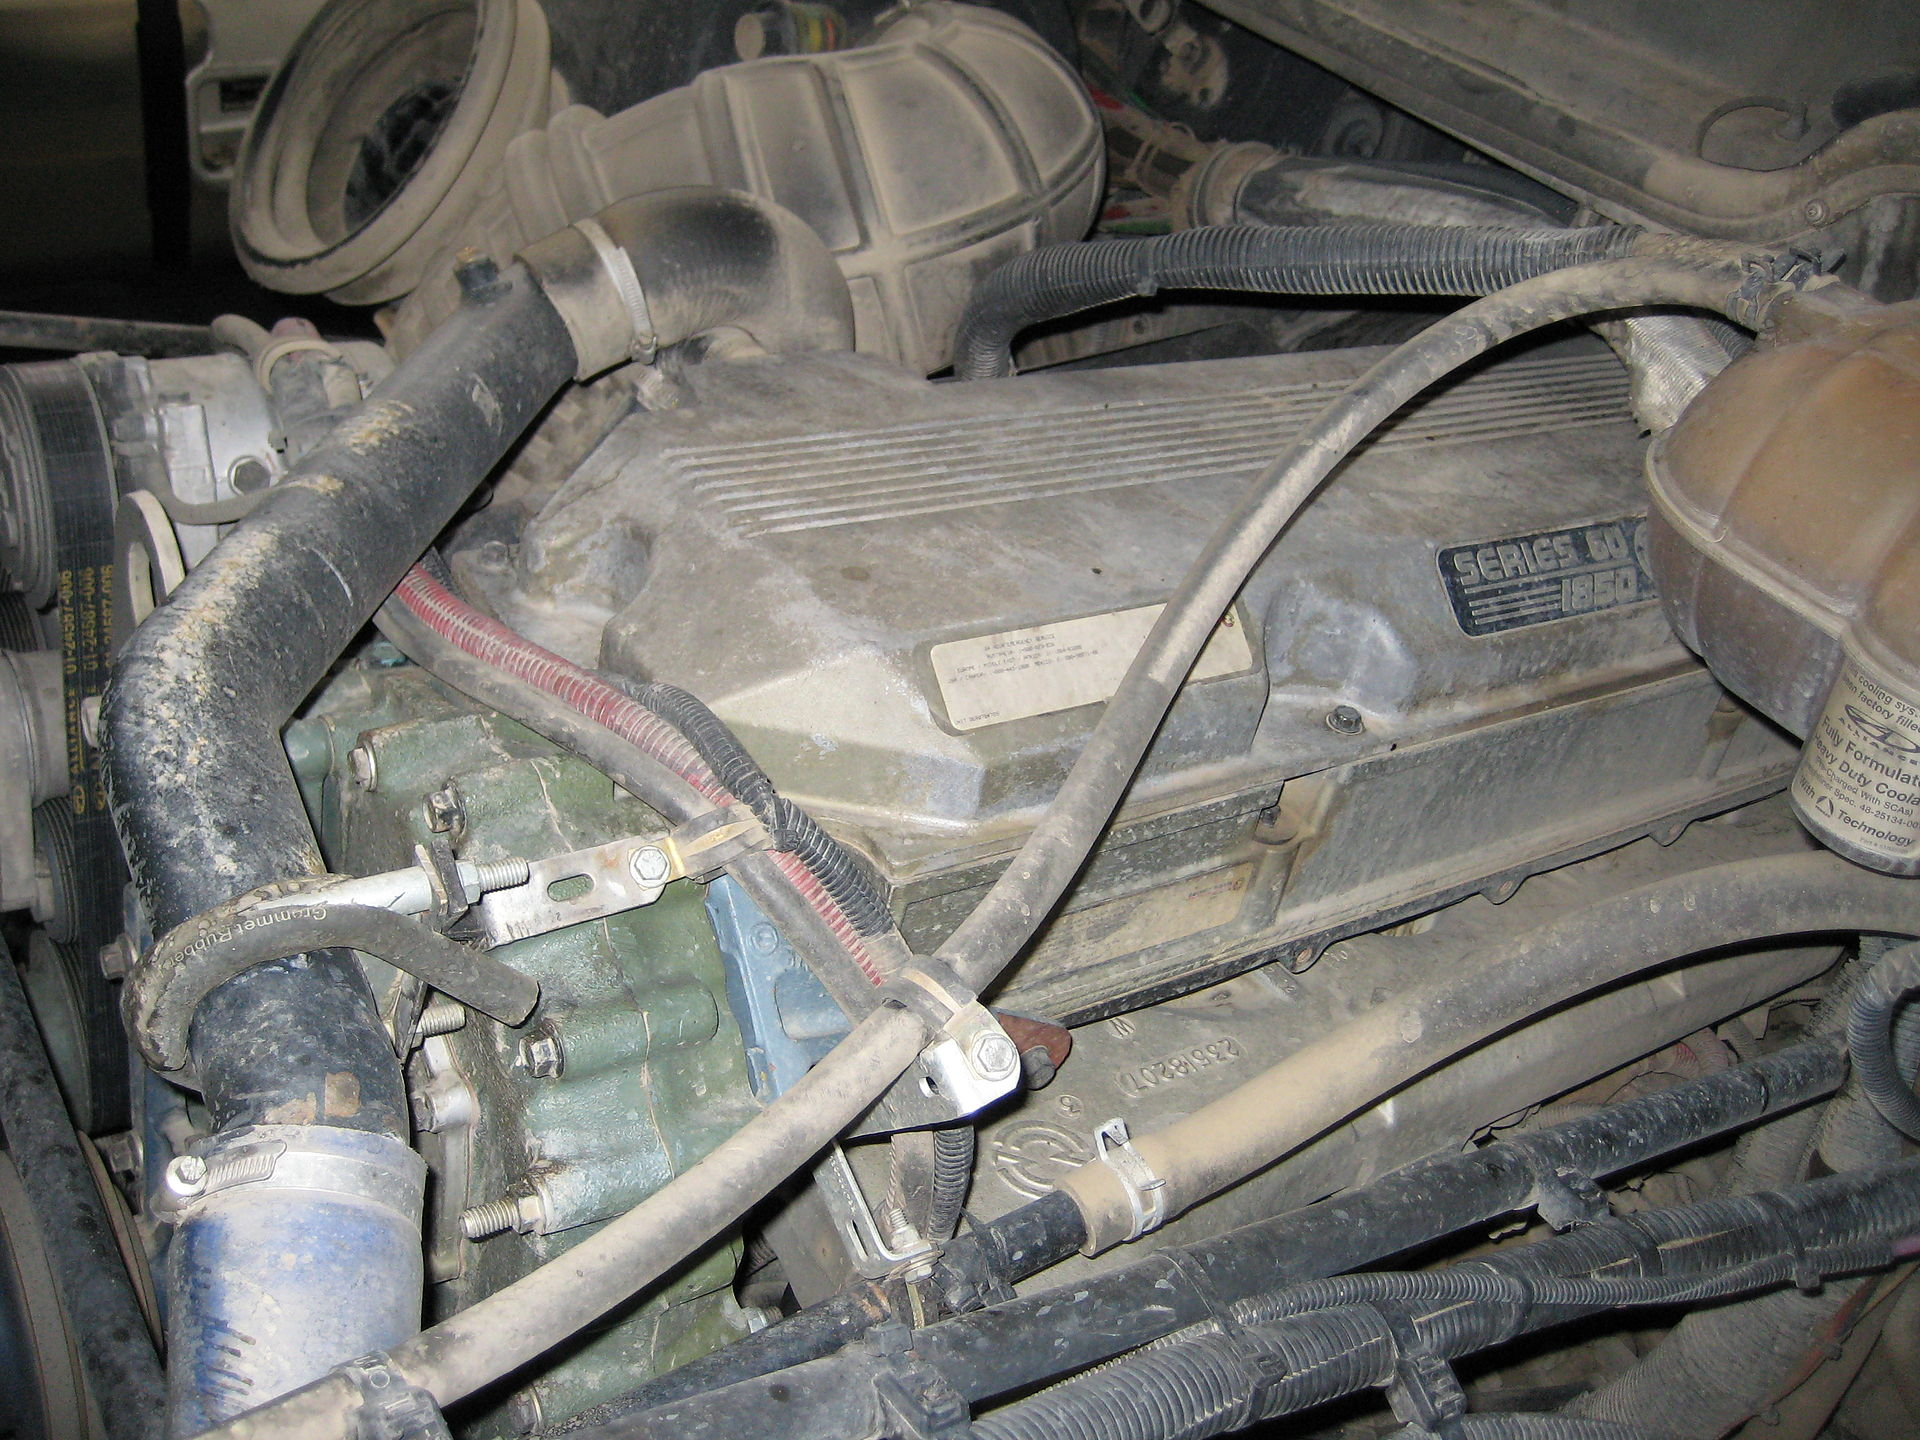 Engine Sensor Locations On A Detroit Dd13 Get Free Image 2008 Freightliner Ecm Wiring Diagram Coolant Diesel 60 Wikipedia